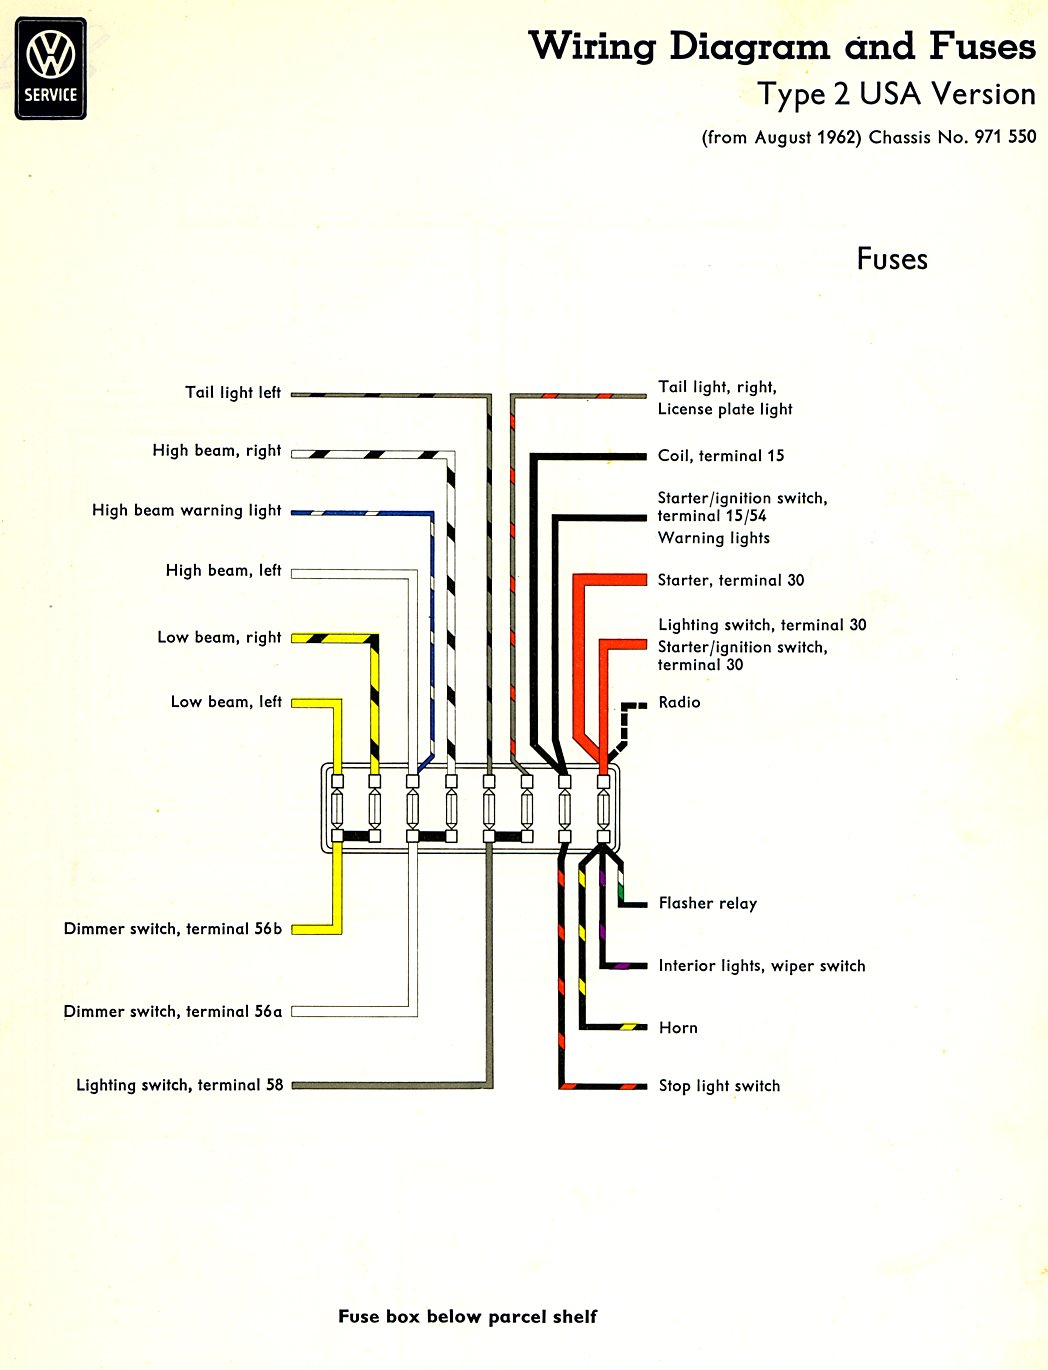 Type 2 Wiring Diagrams Chevy Corvette Tail Light Diagram